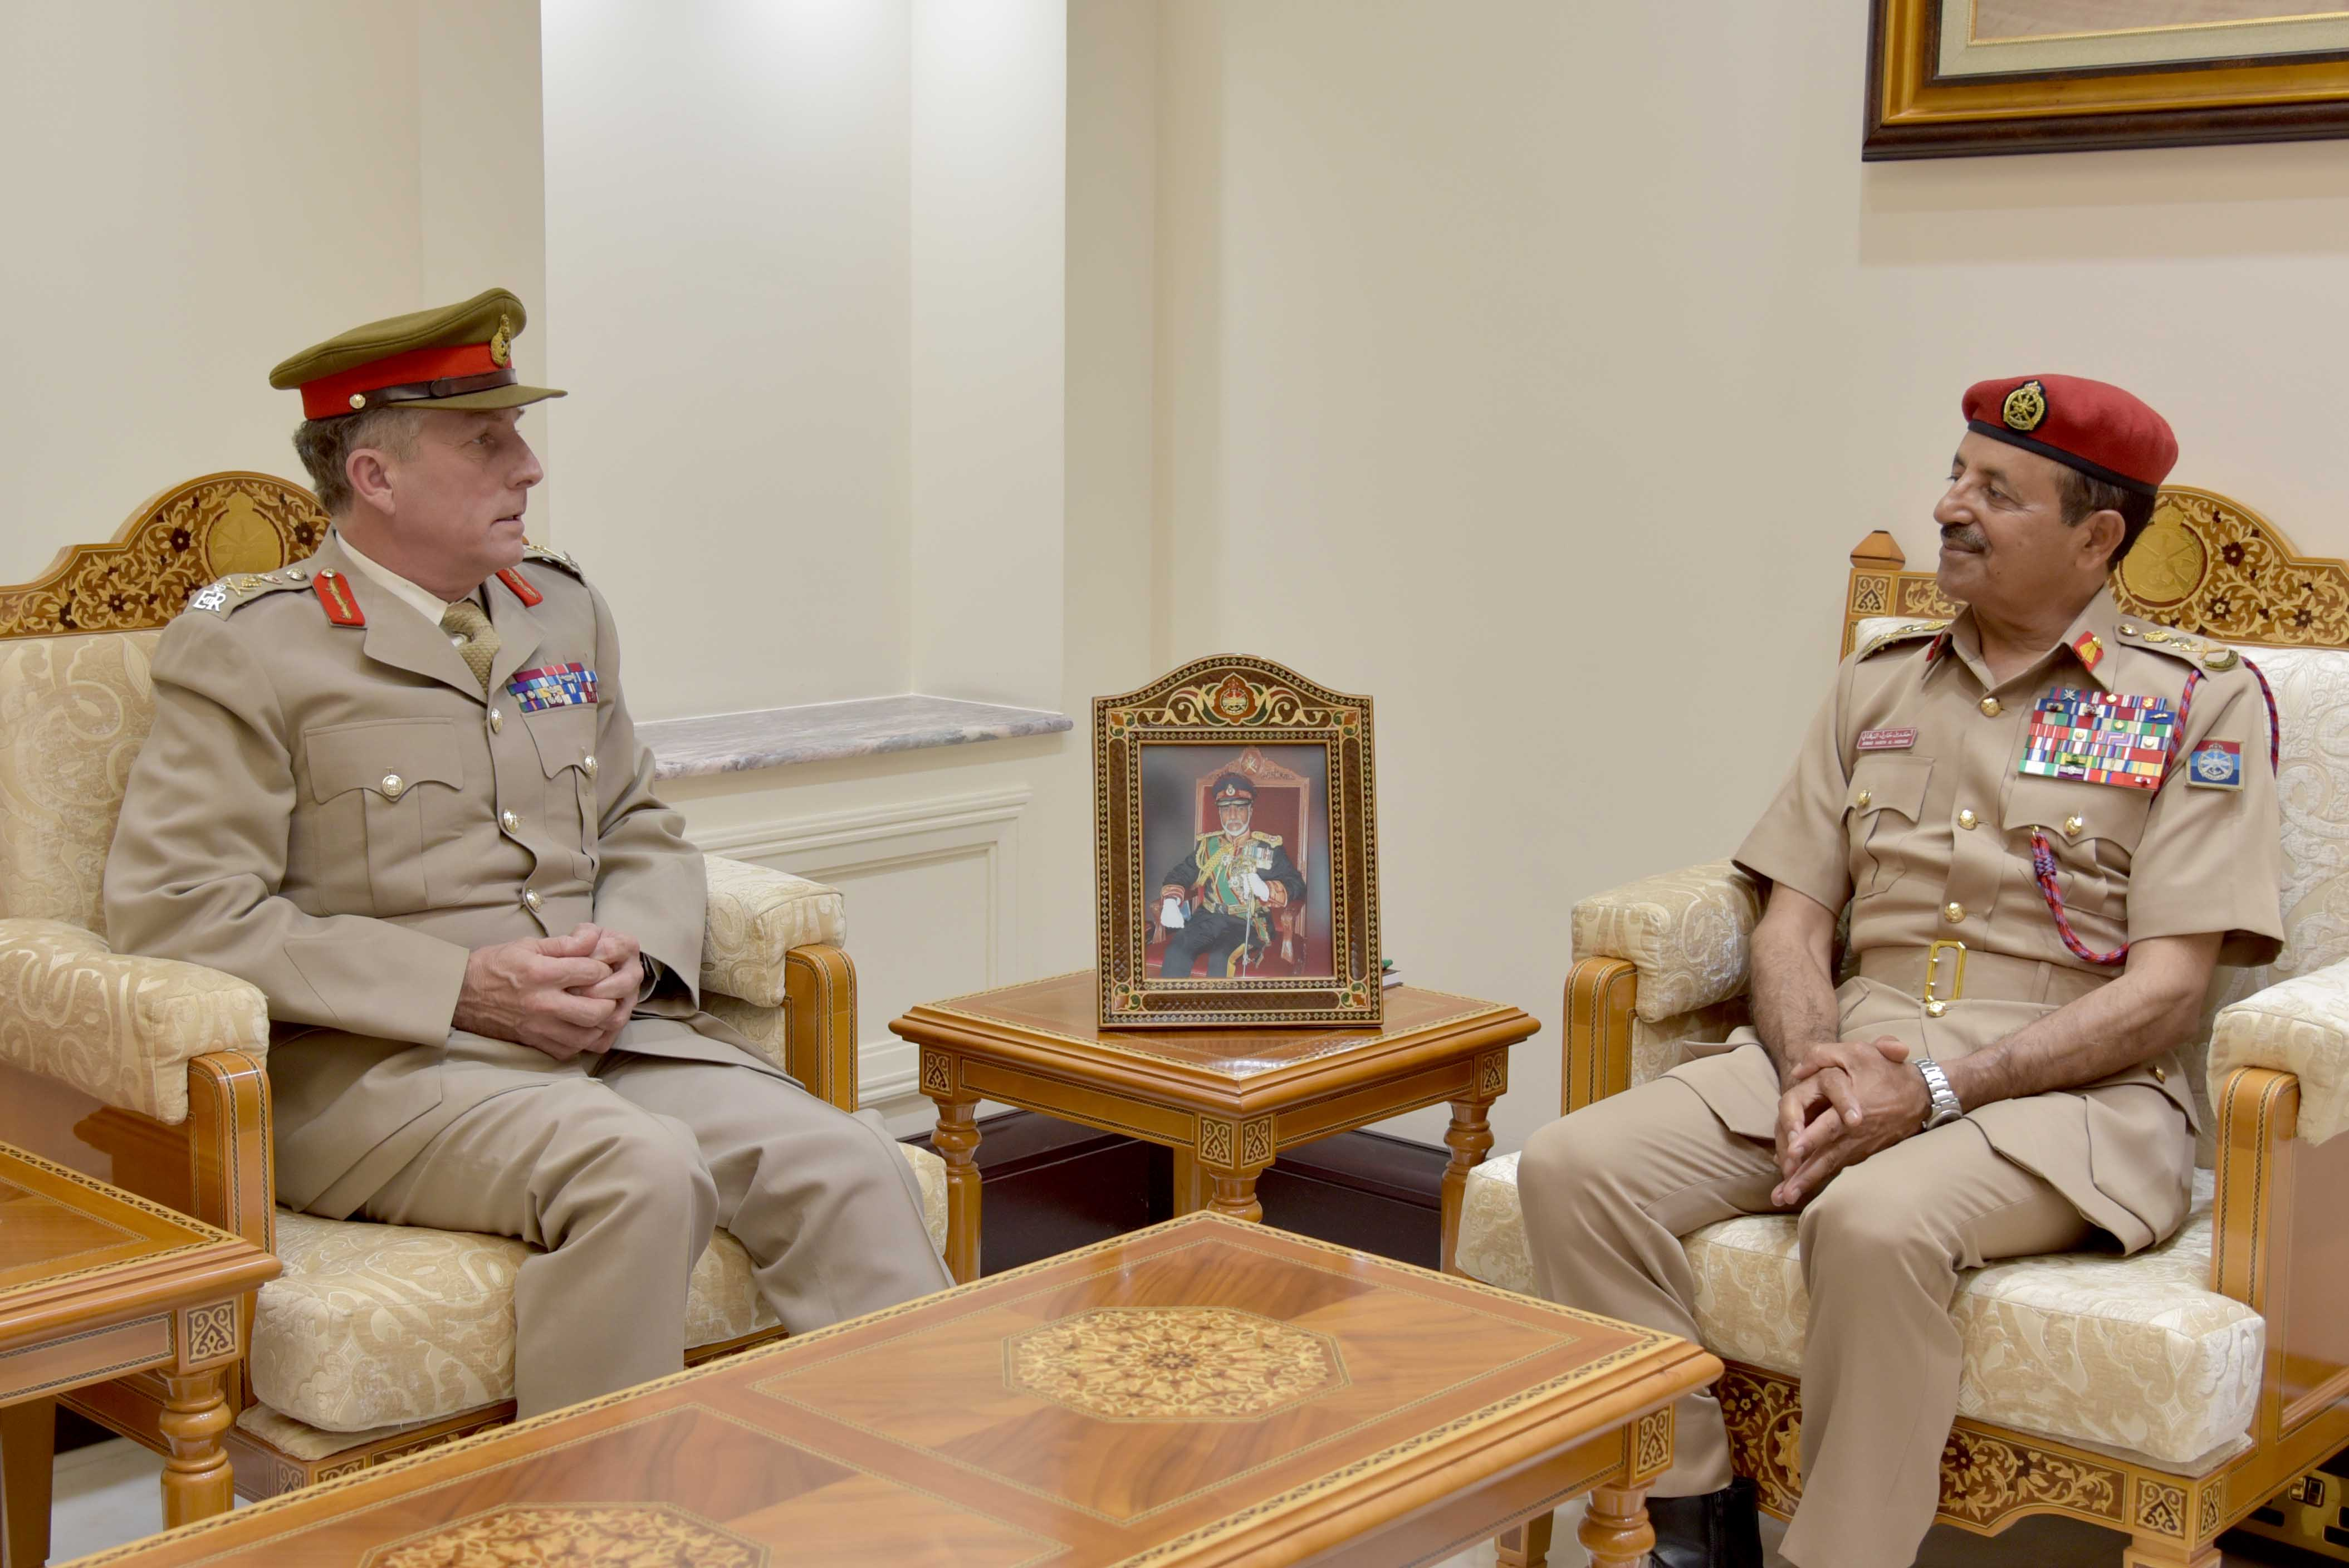 Royal Office Minister, Defence Minister hold talks with UK Chief of the Defence Staff